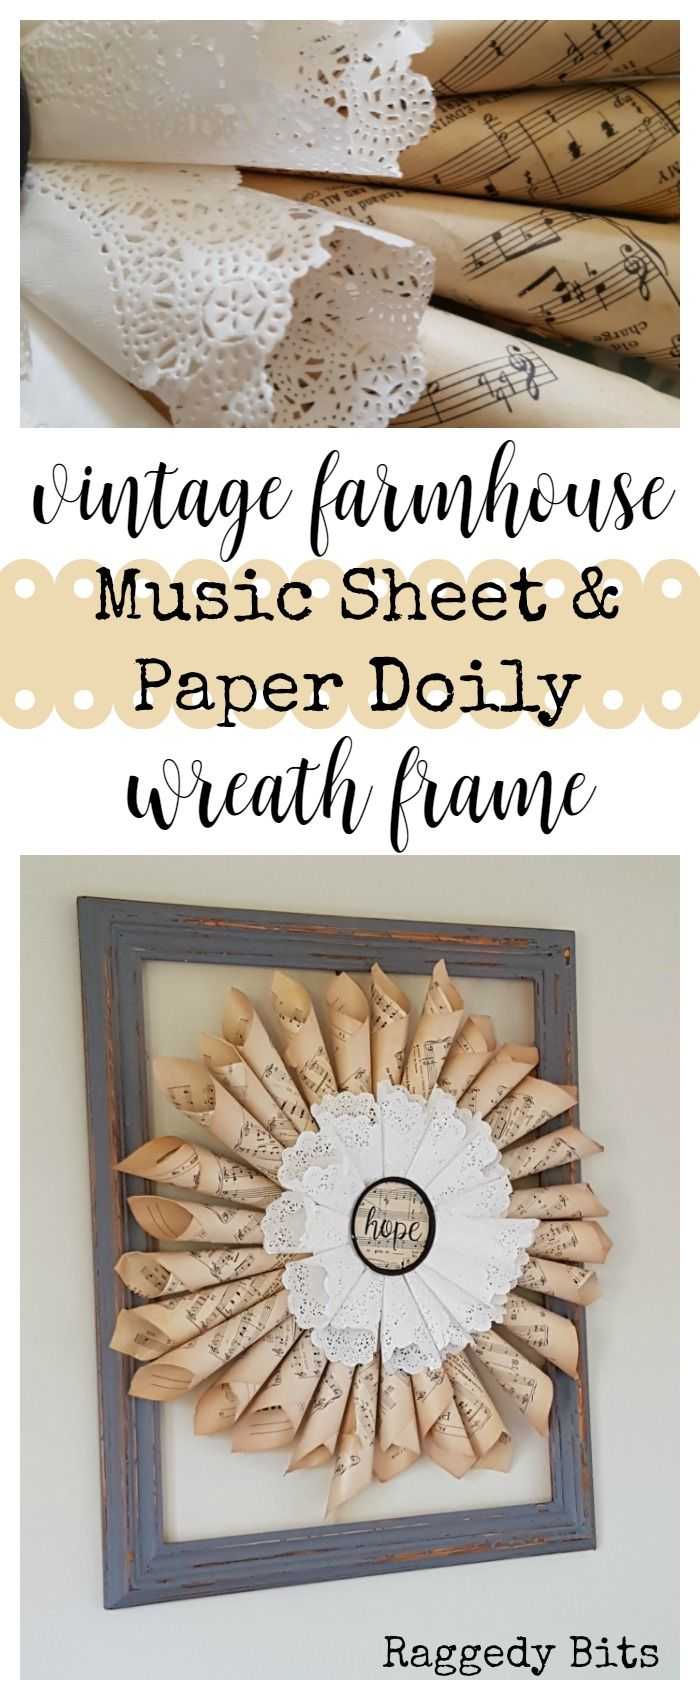 Using music sheets and some paper doily's you can make your very own Vintage Farmhouse Music Sheet and Paper Doily Wreath Frame | Full tutorial | www.raggedy-bits.com